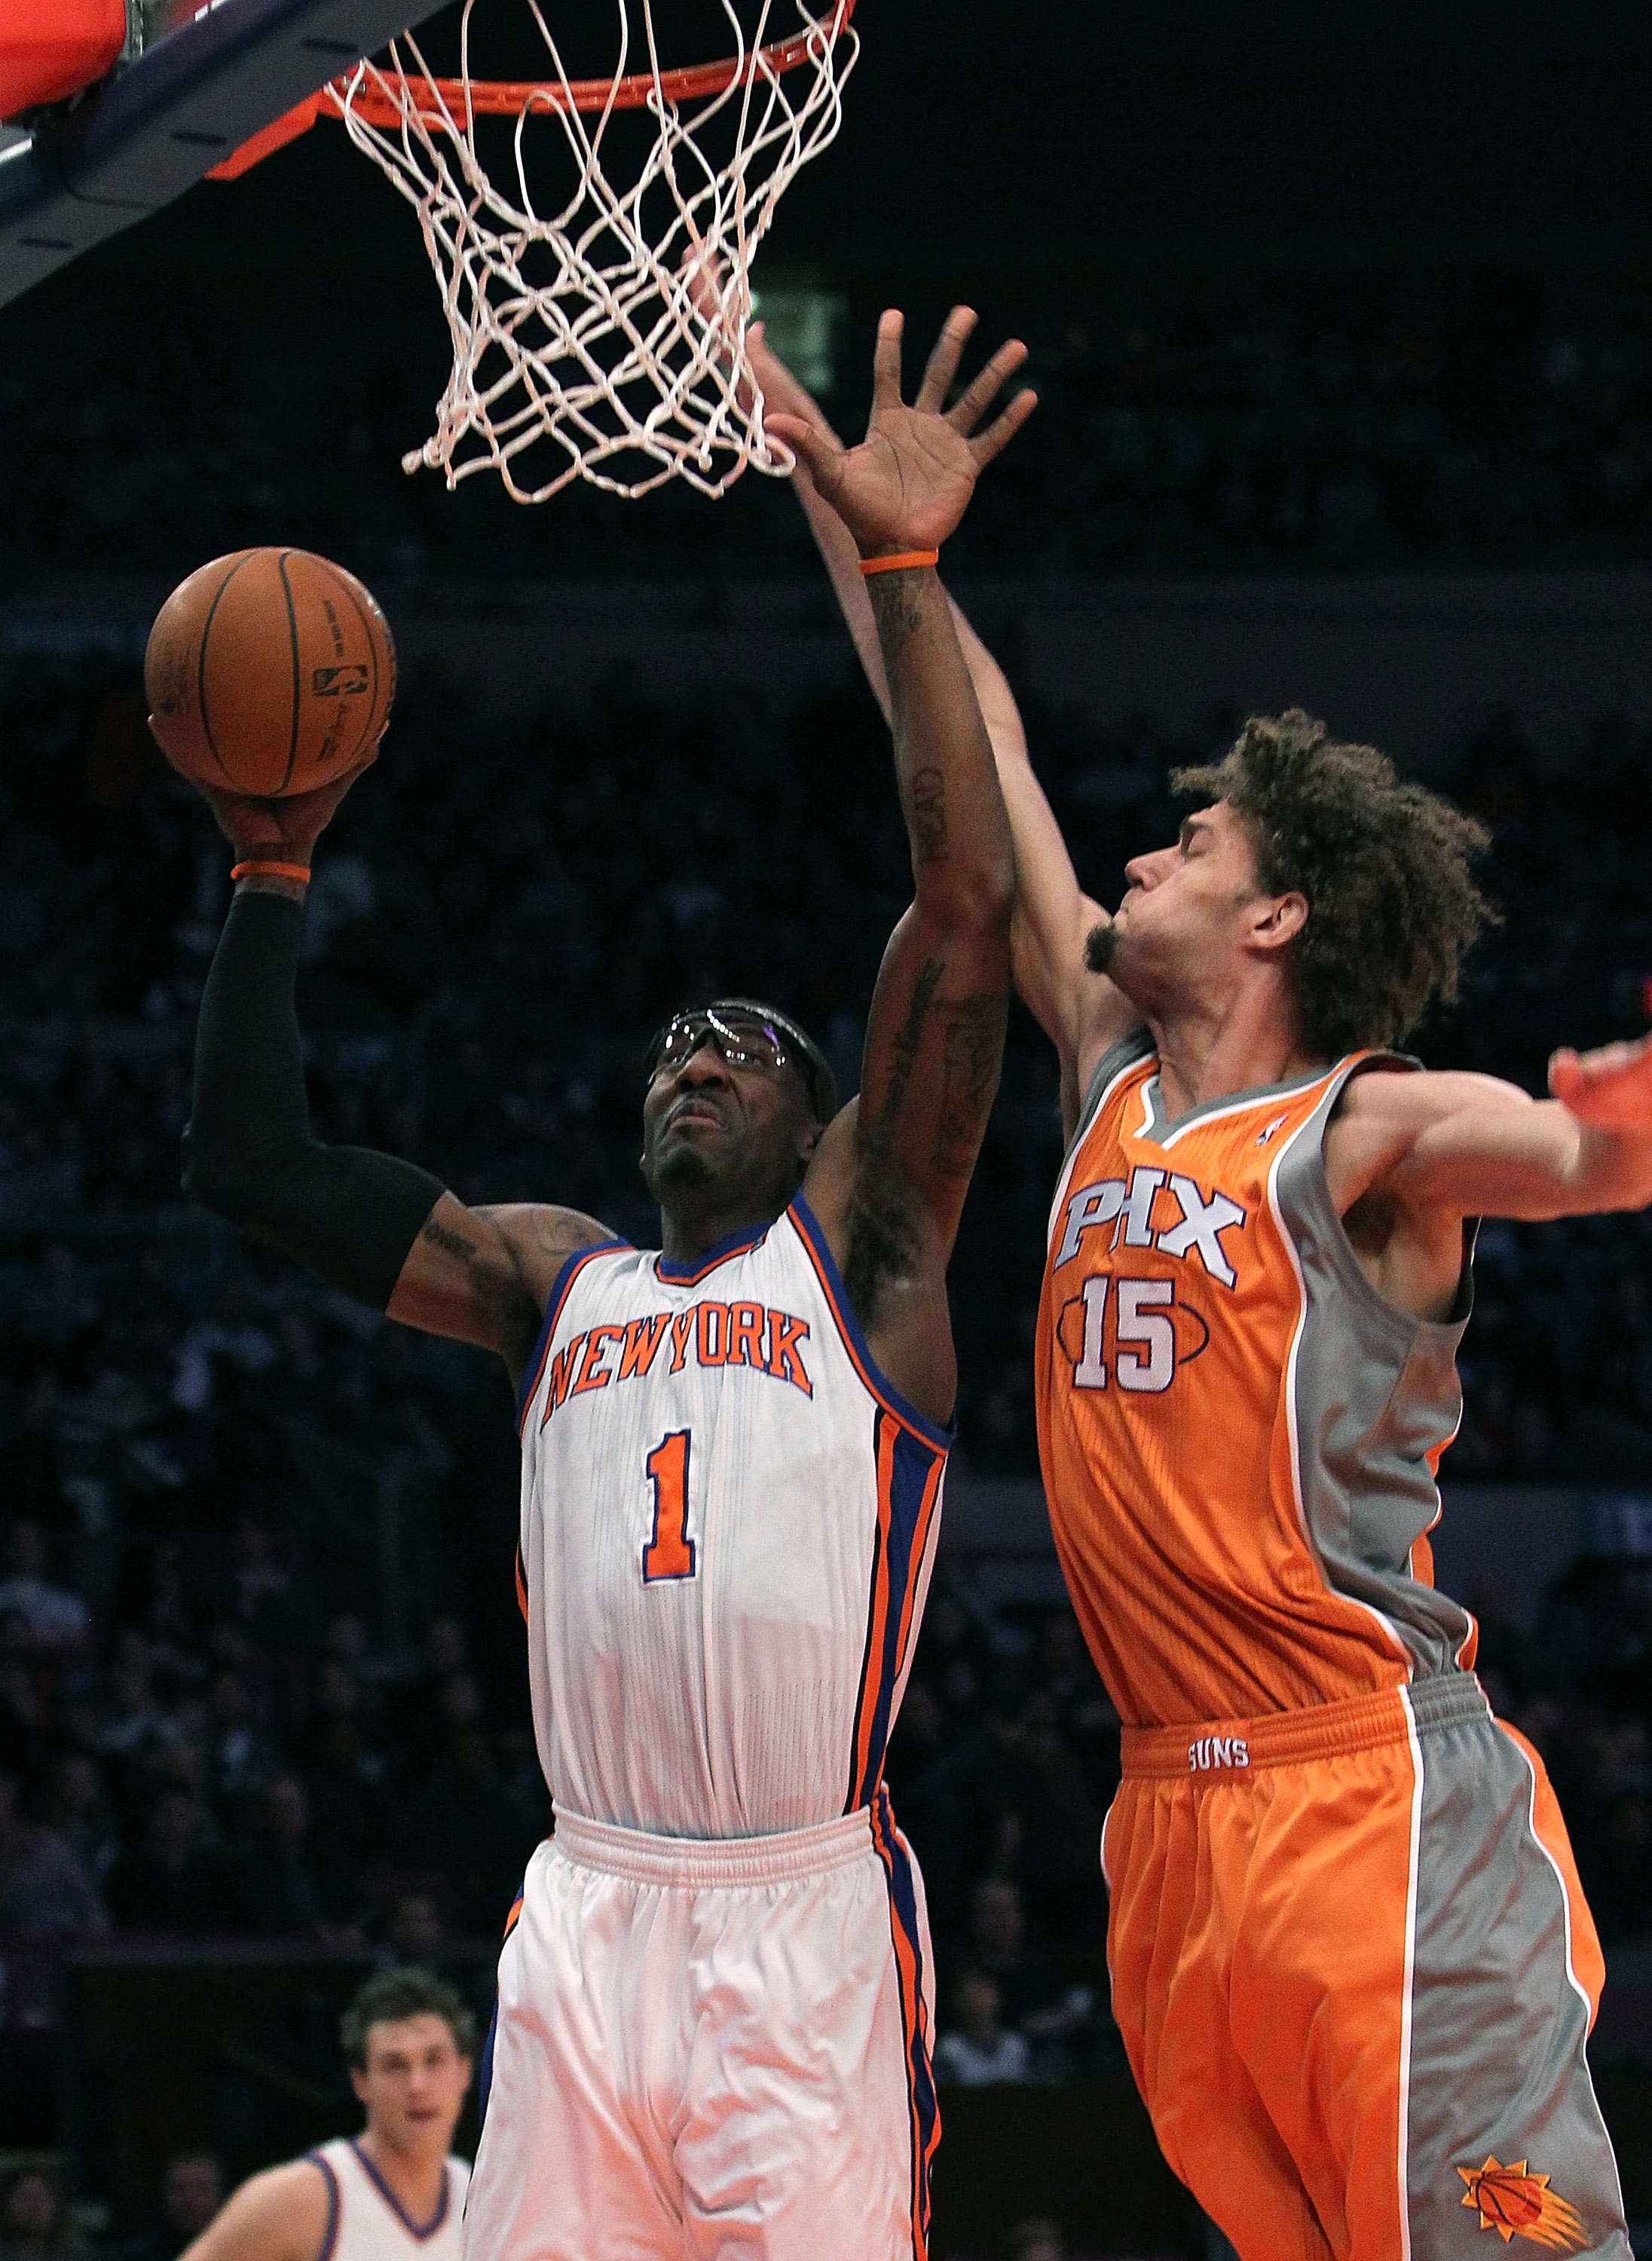 NEW YORK, NY - JANUARY 17:  Amar'e Stoudemire #1 of the New York Knicks shoots the ball against Robin Lopez #15 of the Phoenix Suns at Madison Square Garden on January 17, 2011 in New York City. NOTE TO USER: User expressly acknowledges and agrees that, b